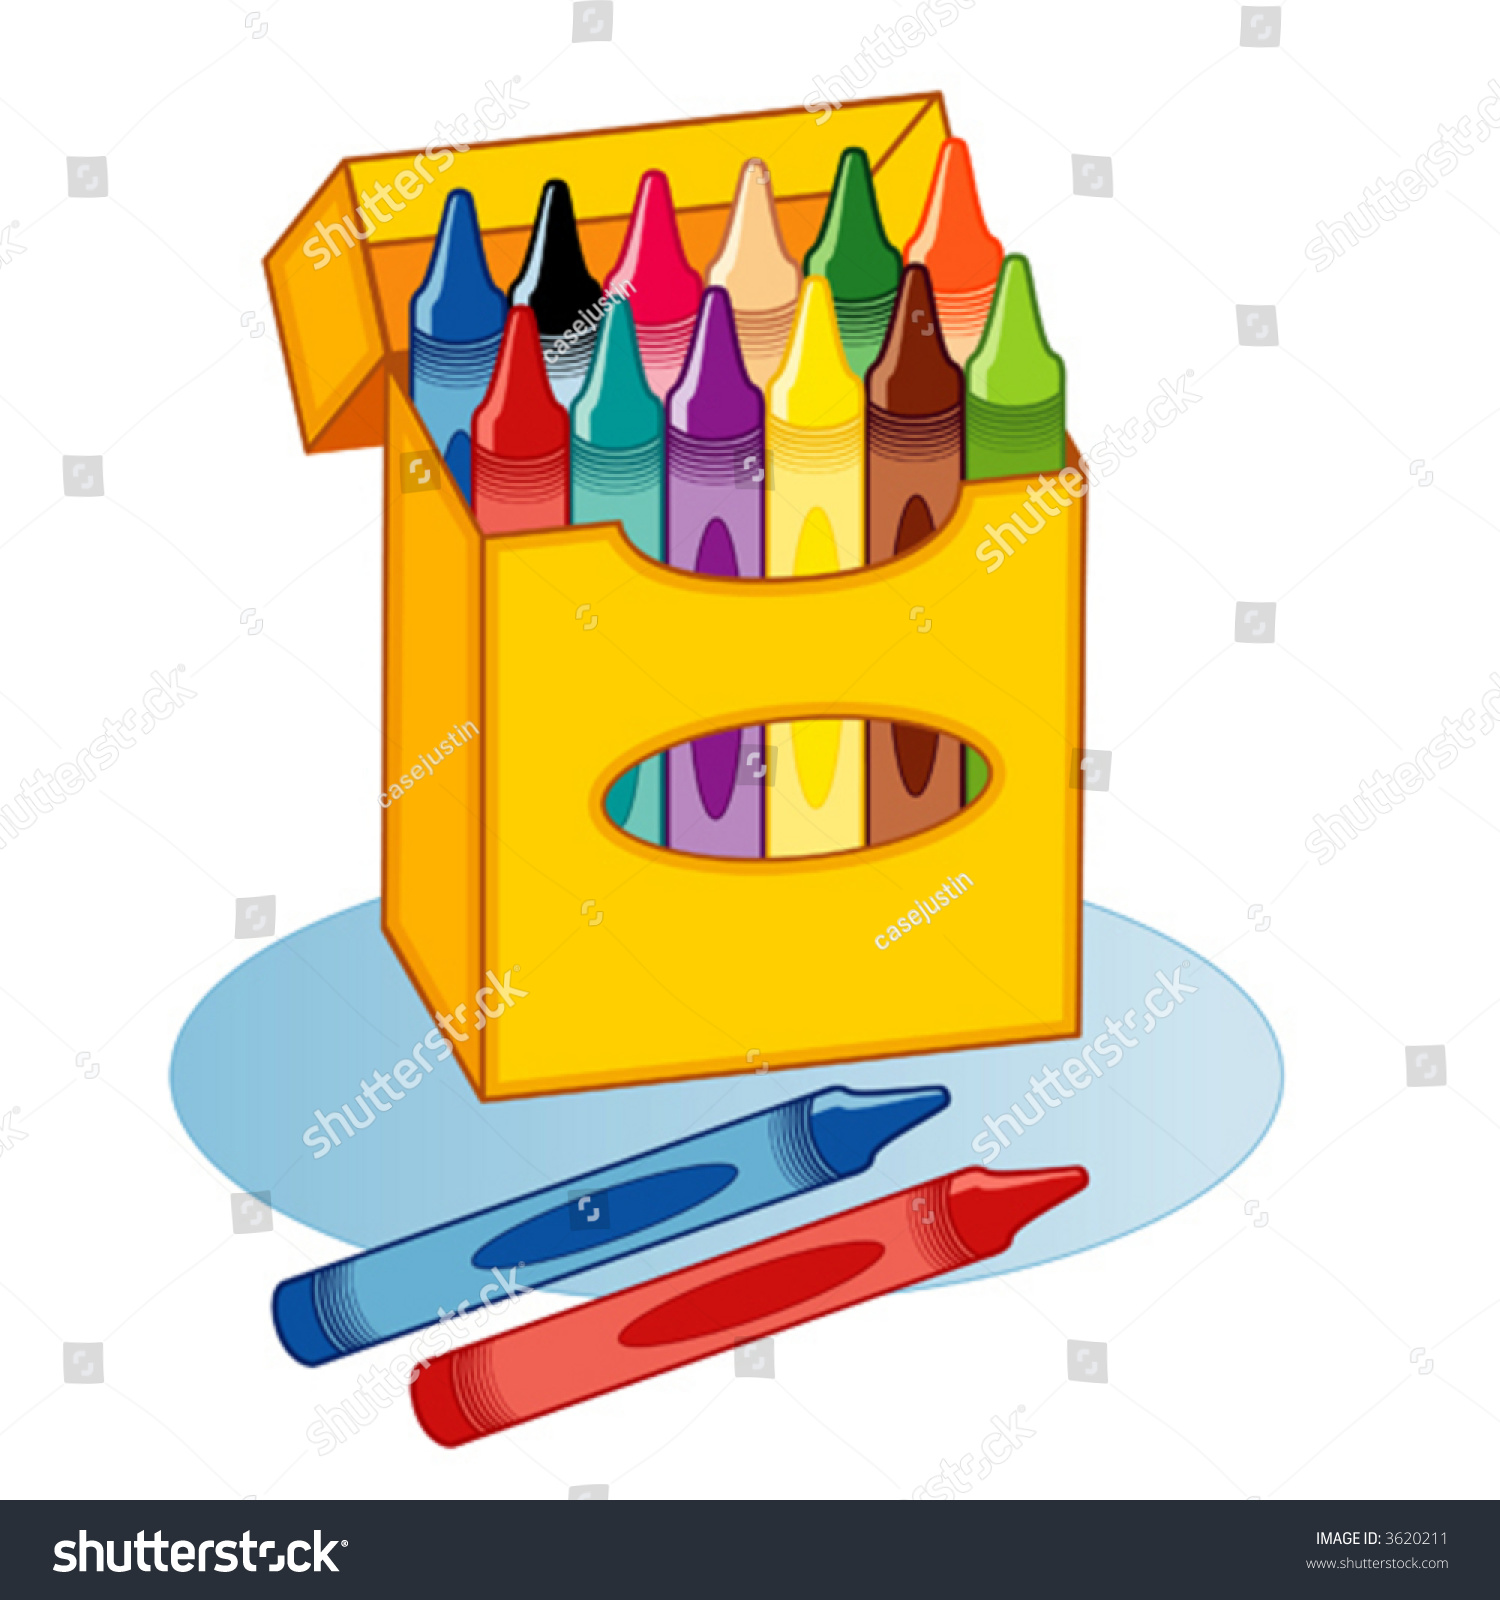 Main Colors In A Crayon Box Stock Vector Vector Big Box Of Crayons In